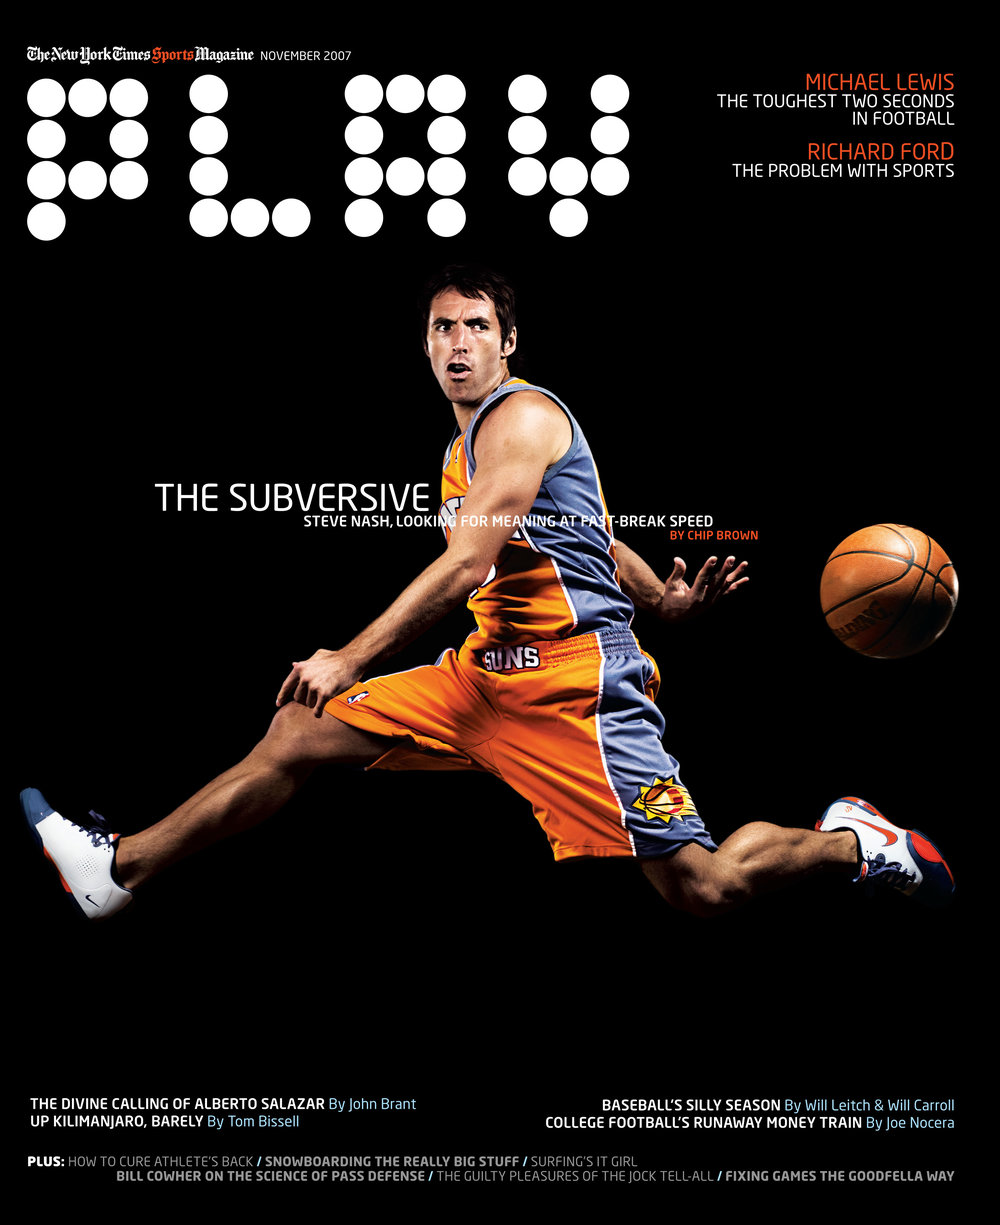 10.28.07.STEVENASH-cover.jpg